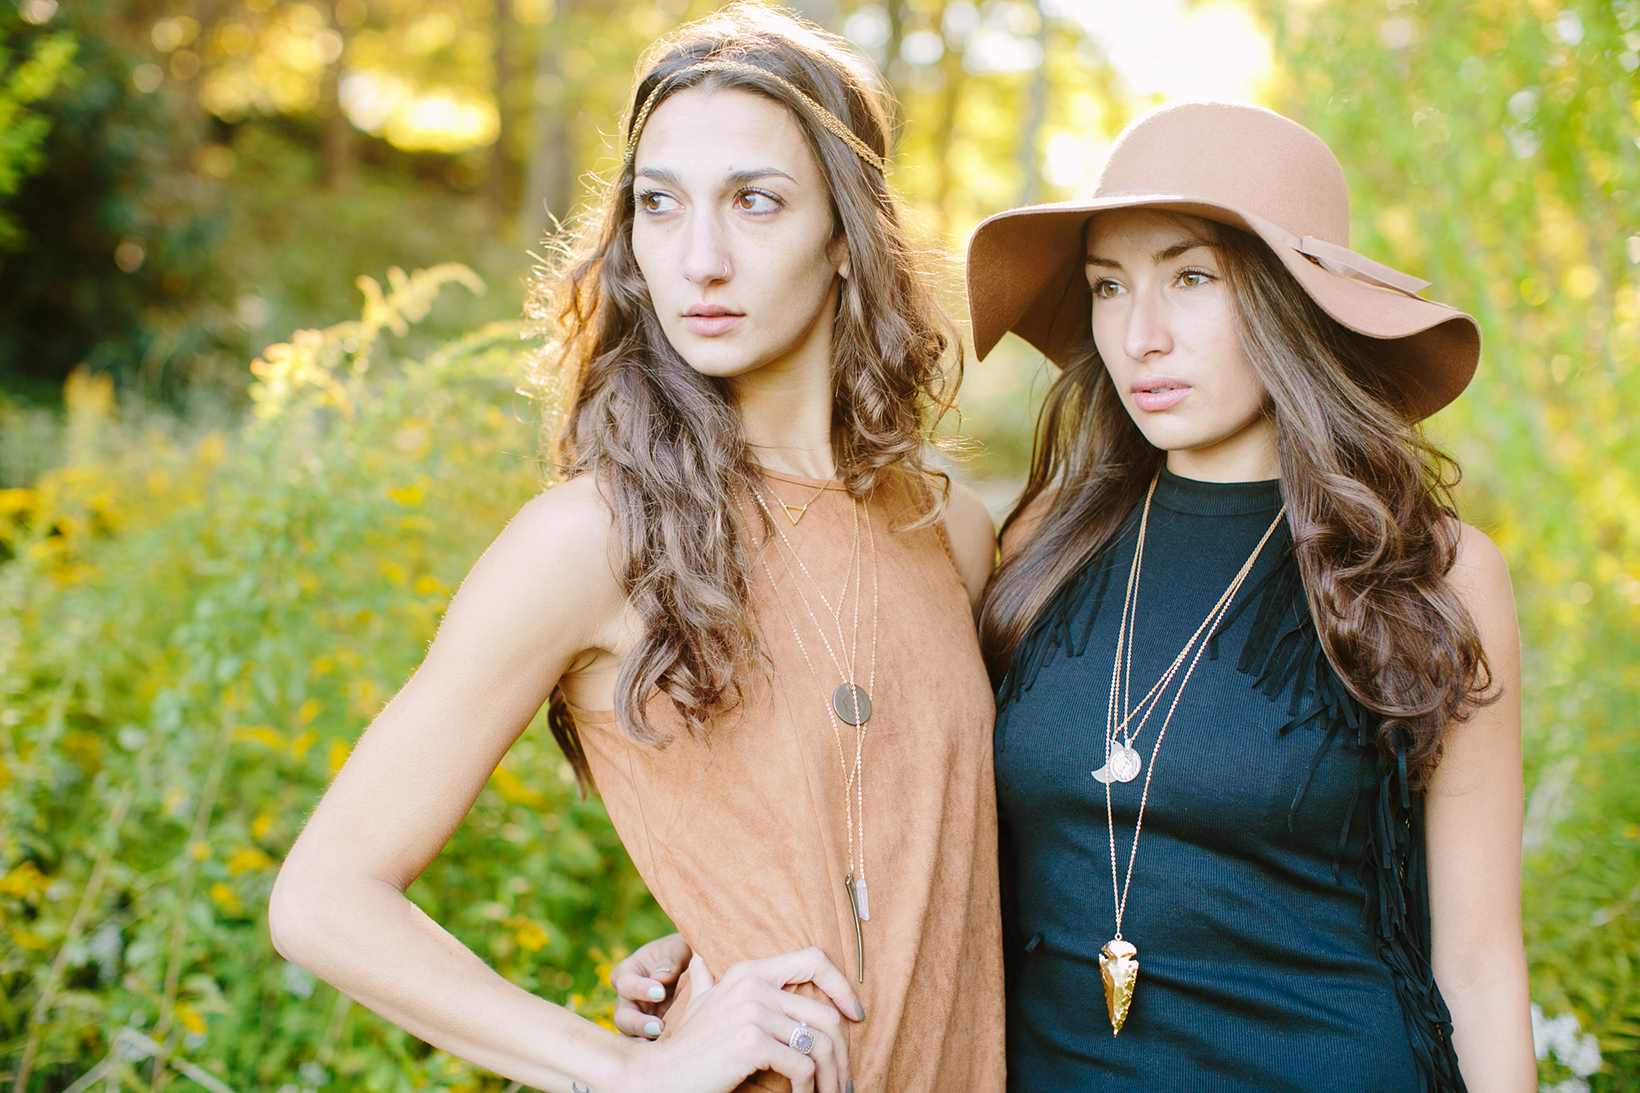 Cape Cod wedding blog photo from Stacey Hedman | Photography about Fashion with TRUST Jewelry